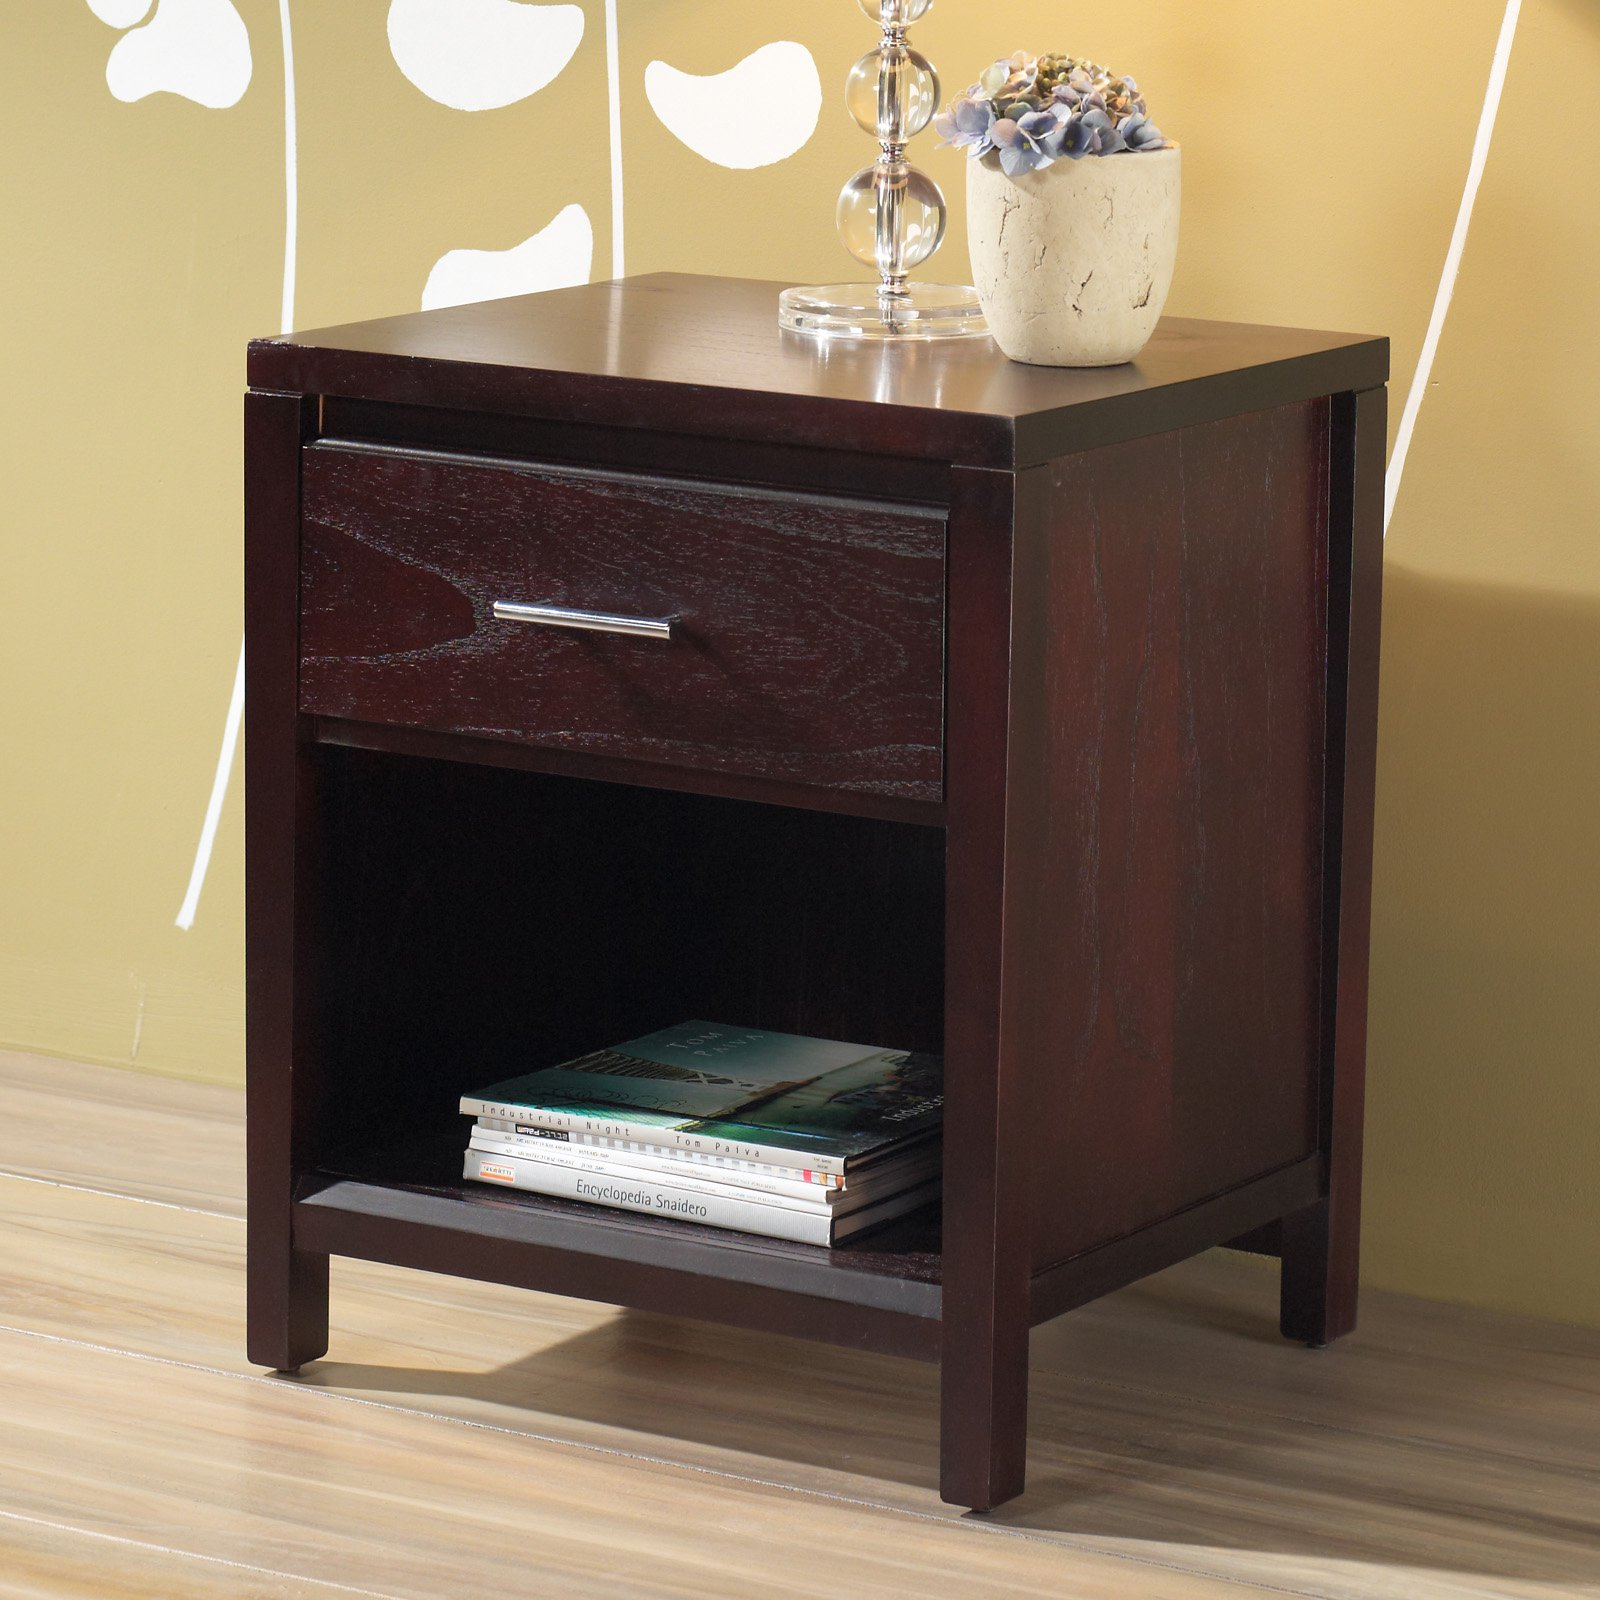 Modus Nevis Charging Station Nightstand by Modus Furniture International